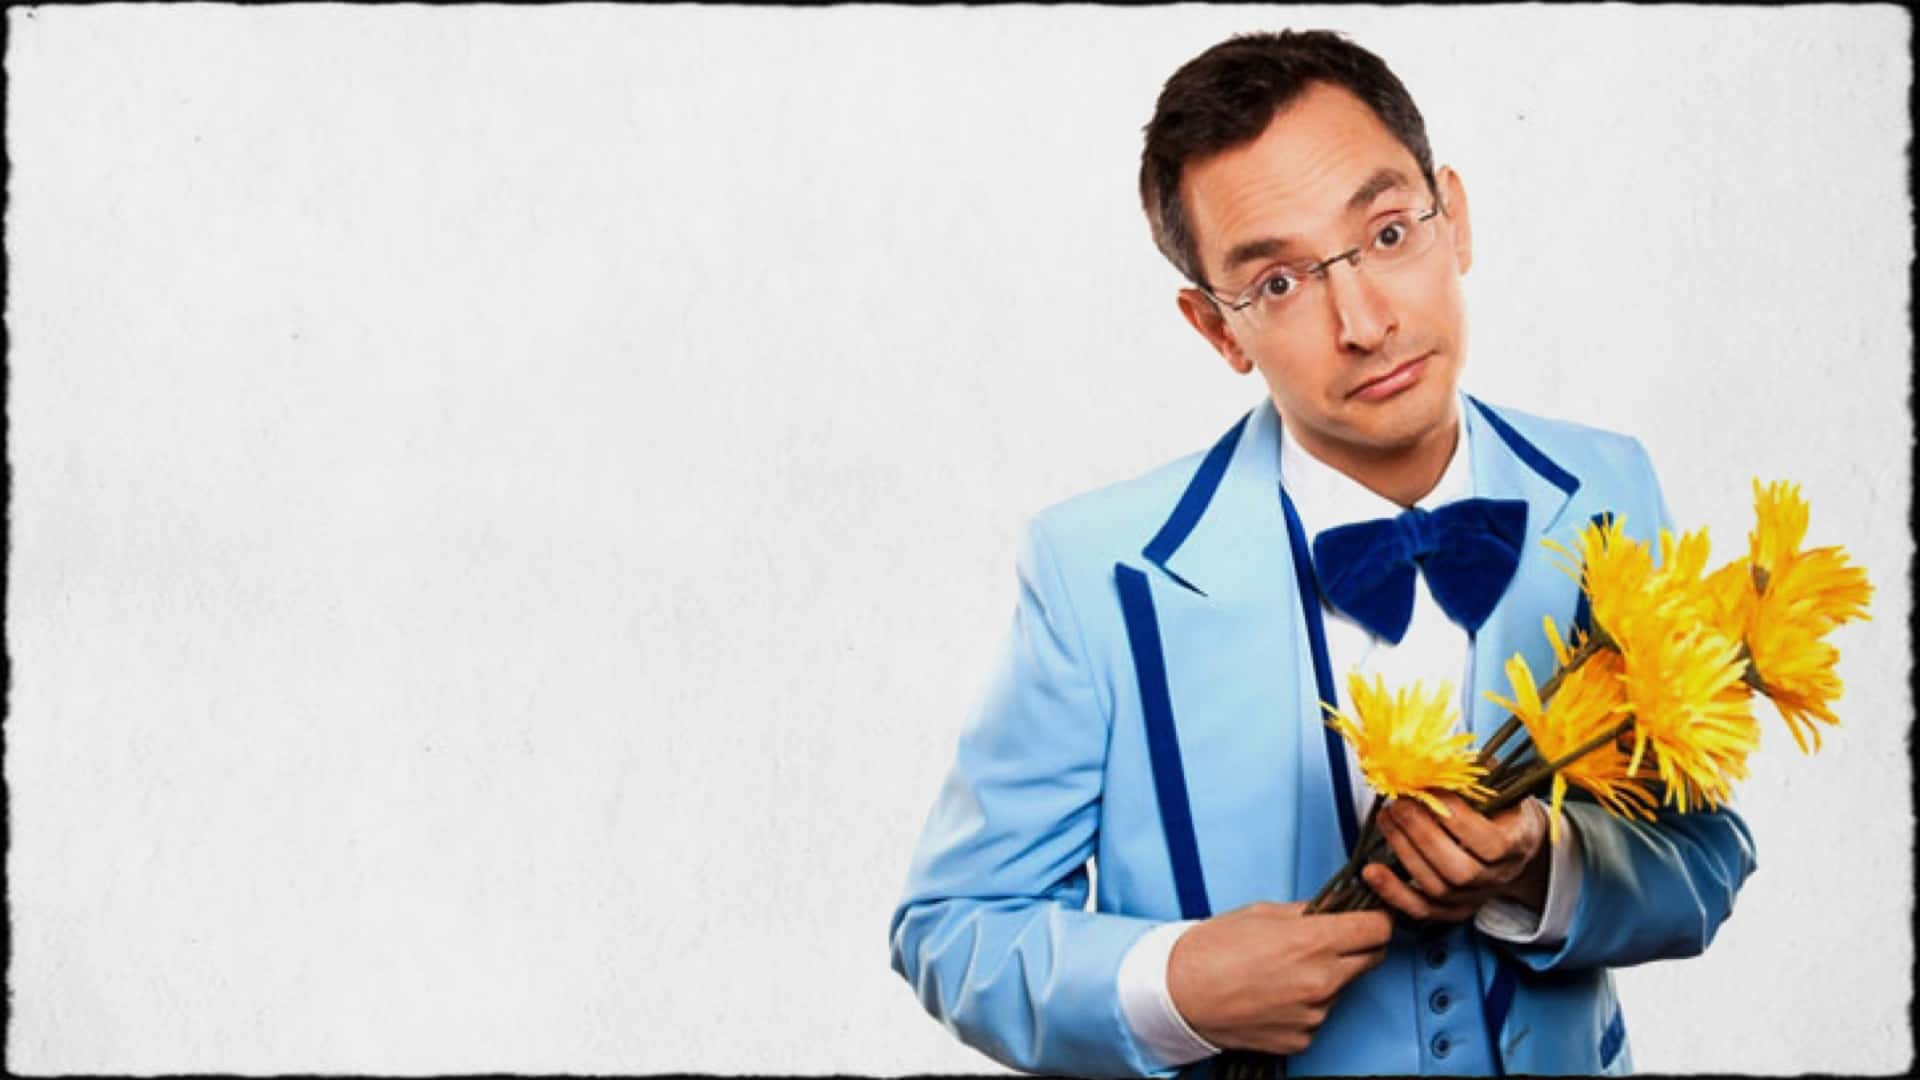 """Myq Kaplan of """"America's got talent"""" is shown in a blue dress suit, holding a bunch of flowers."""